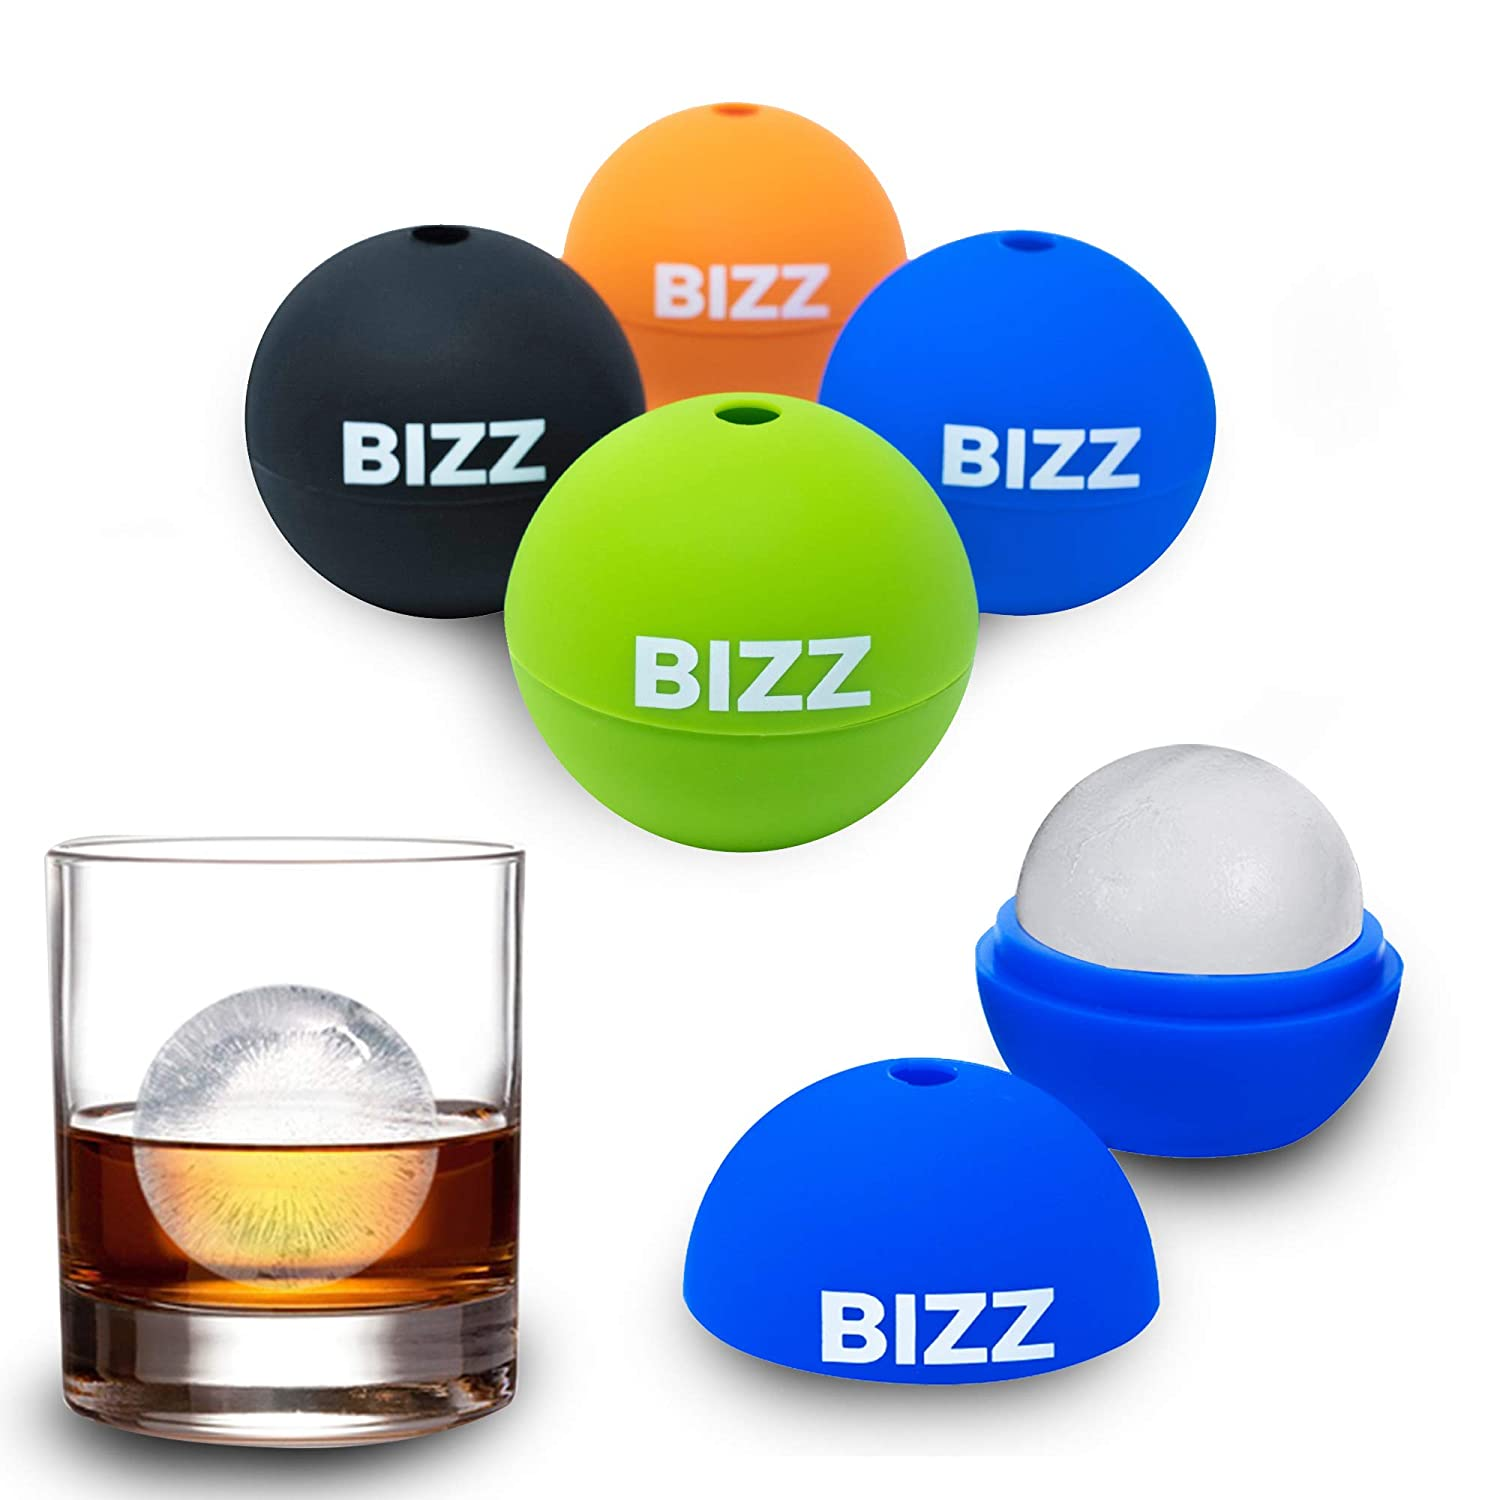 Bizz Ice Sphere Molds (4-Pack) Smooth, Round Balls for Whiskey, Scotch, Cocktails and Non-Alcoholic Beverages | Fun, Reusable, Ecofriendly and Freezer Safe | FDA Approved